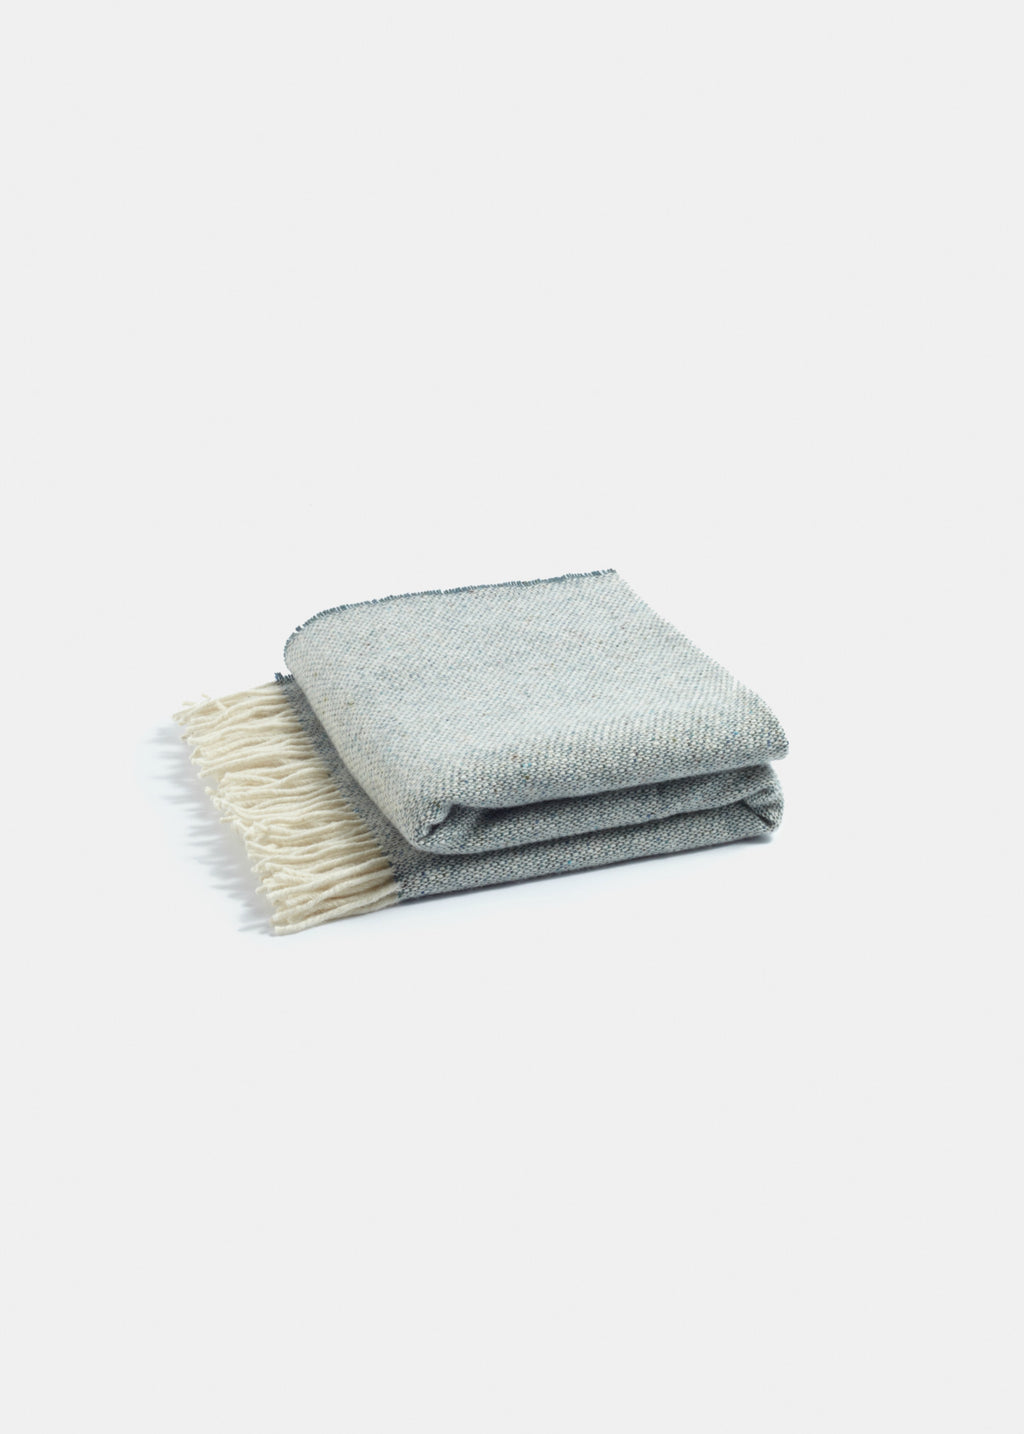 Premium Merino Wool Throw Green - YUYU Sustainable Home Goods